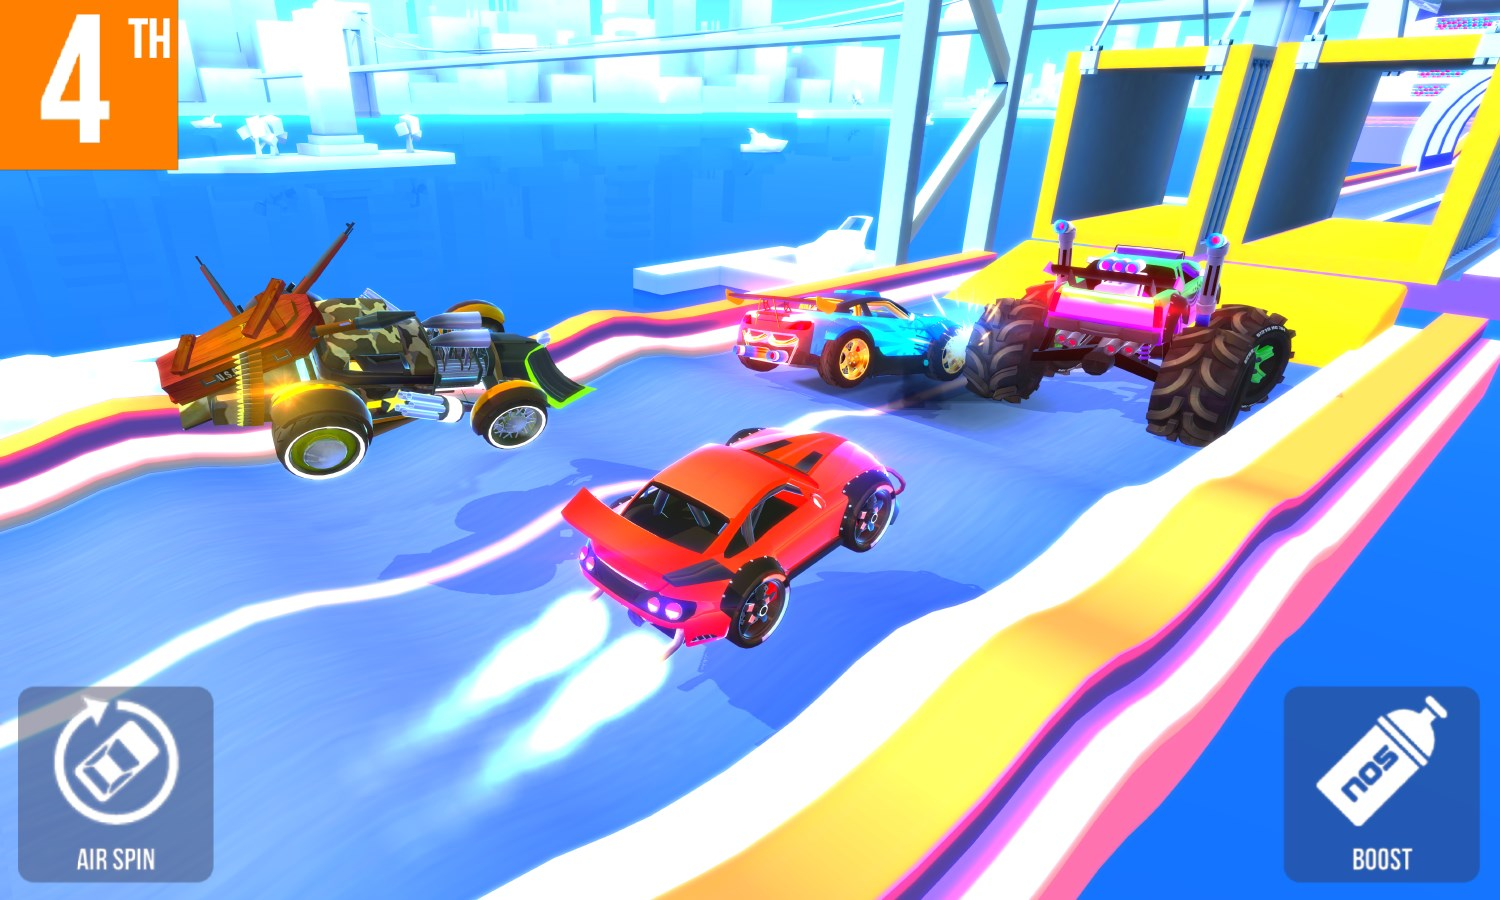 SUP Corrida Multiplayer - Imagem 1 do software